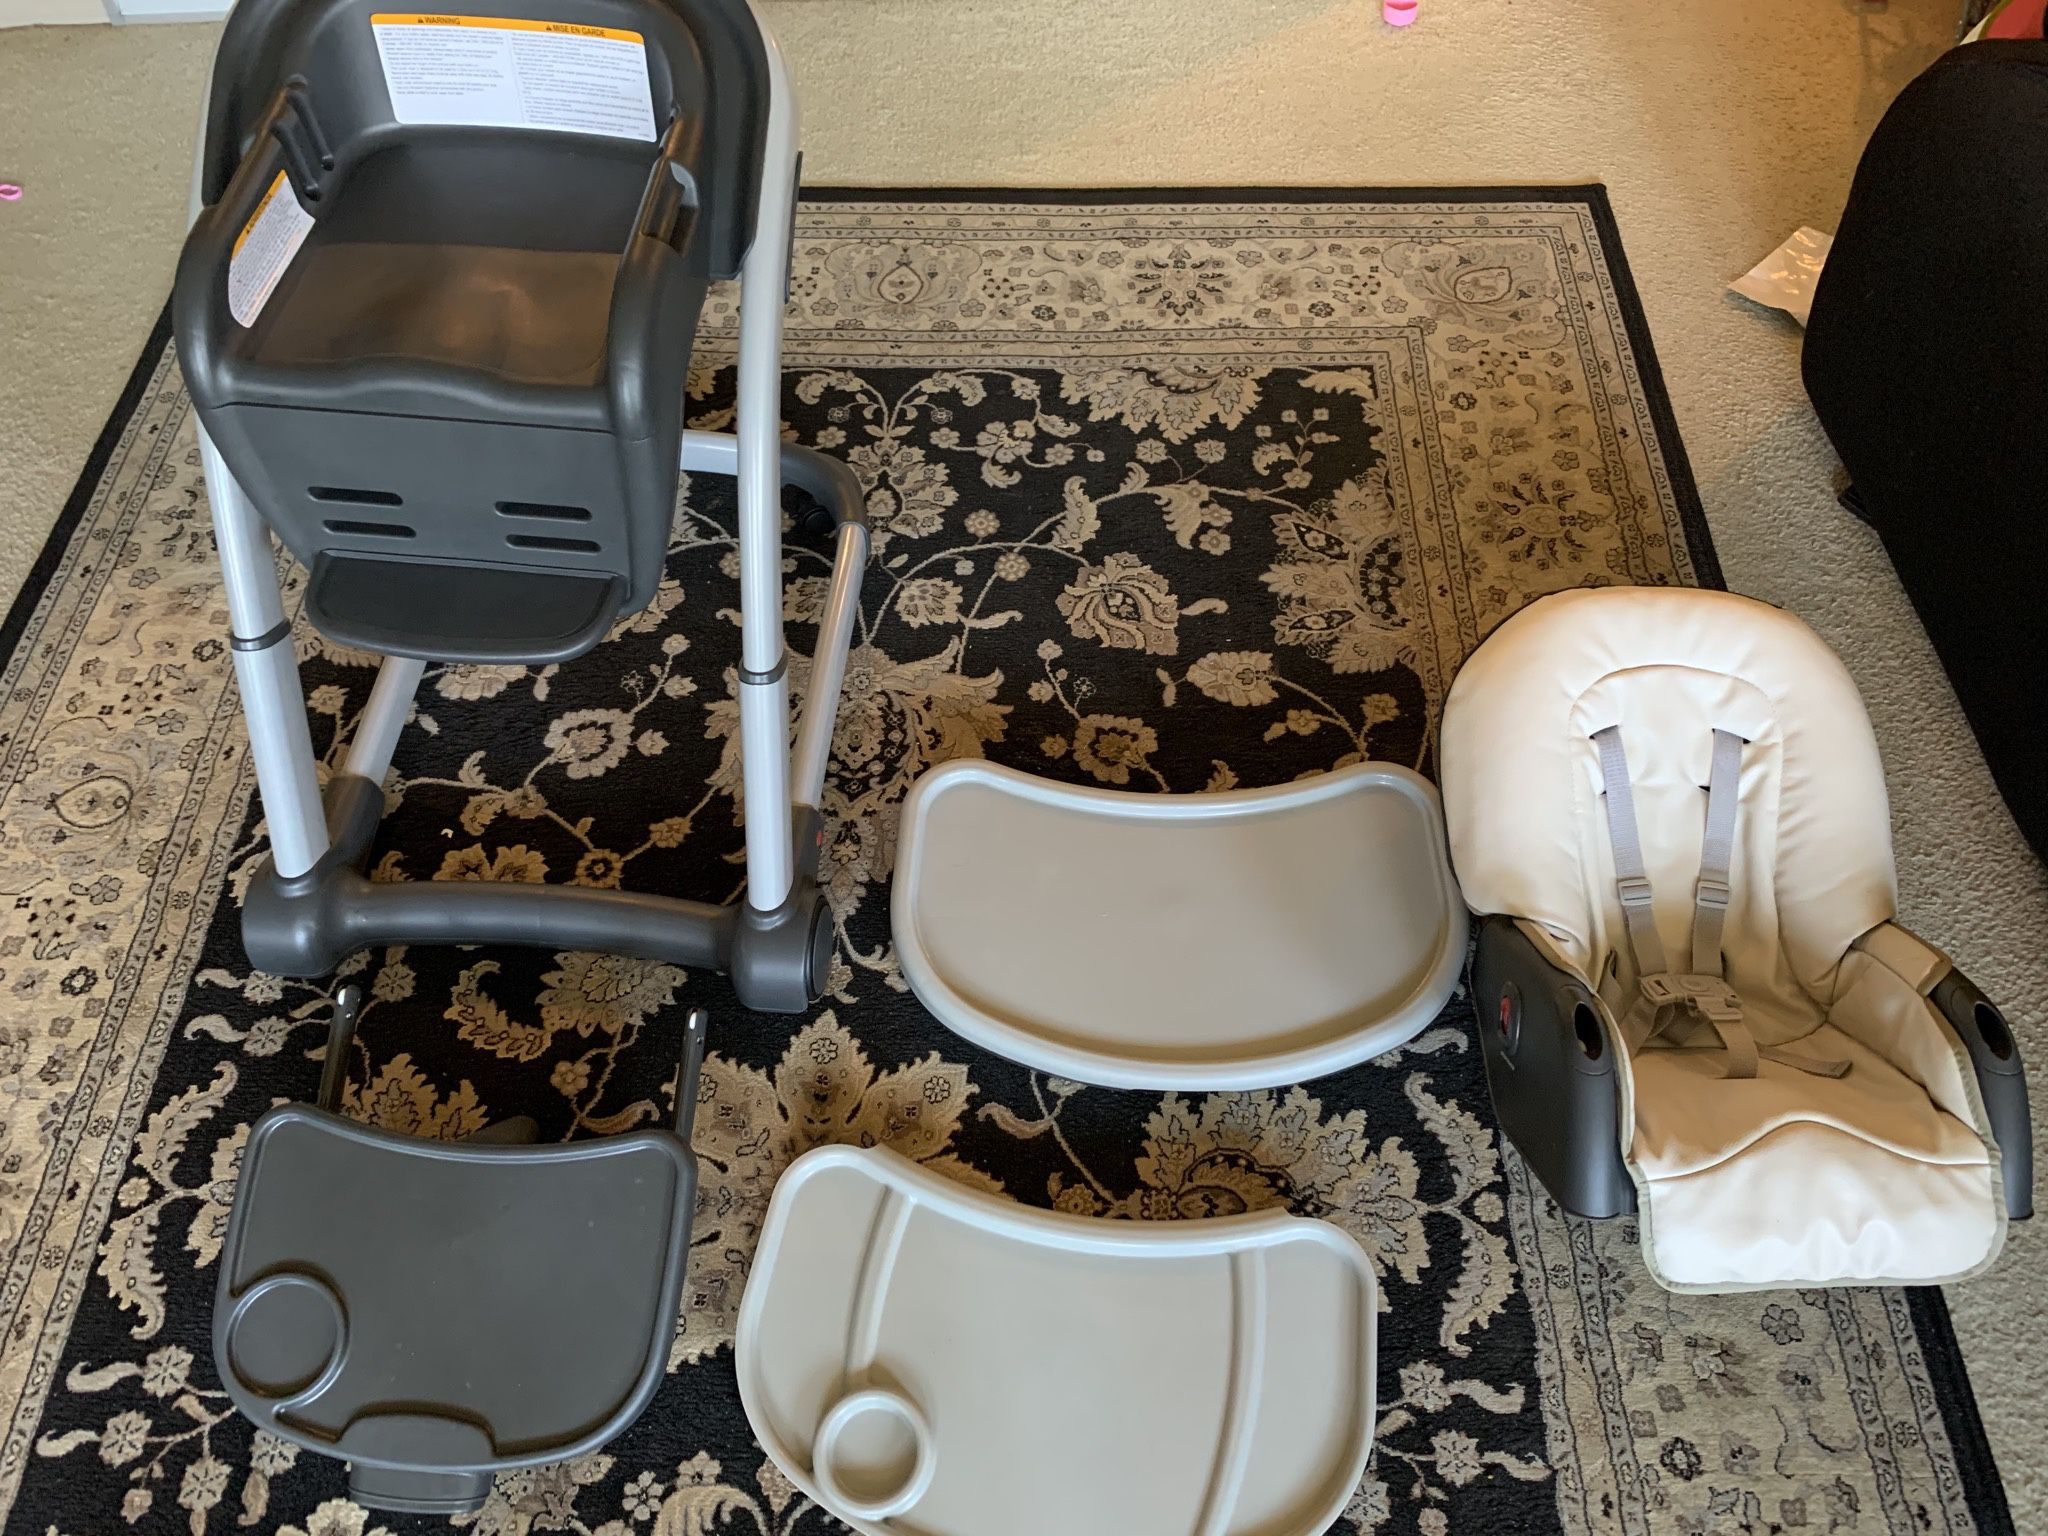 High Chair In Clean And Good Condition